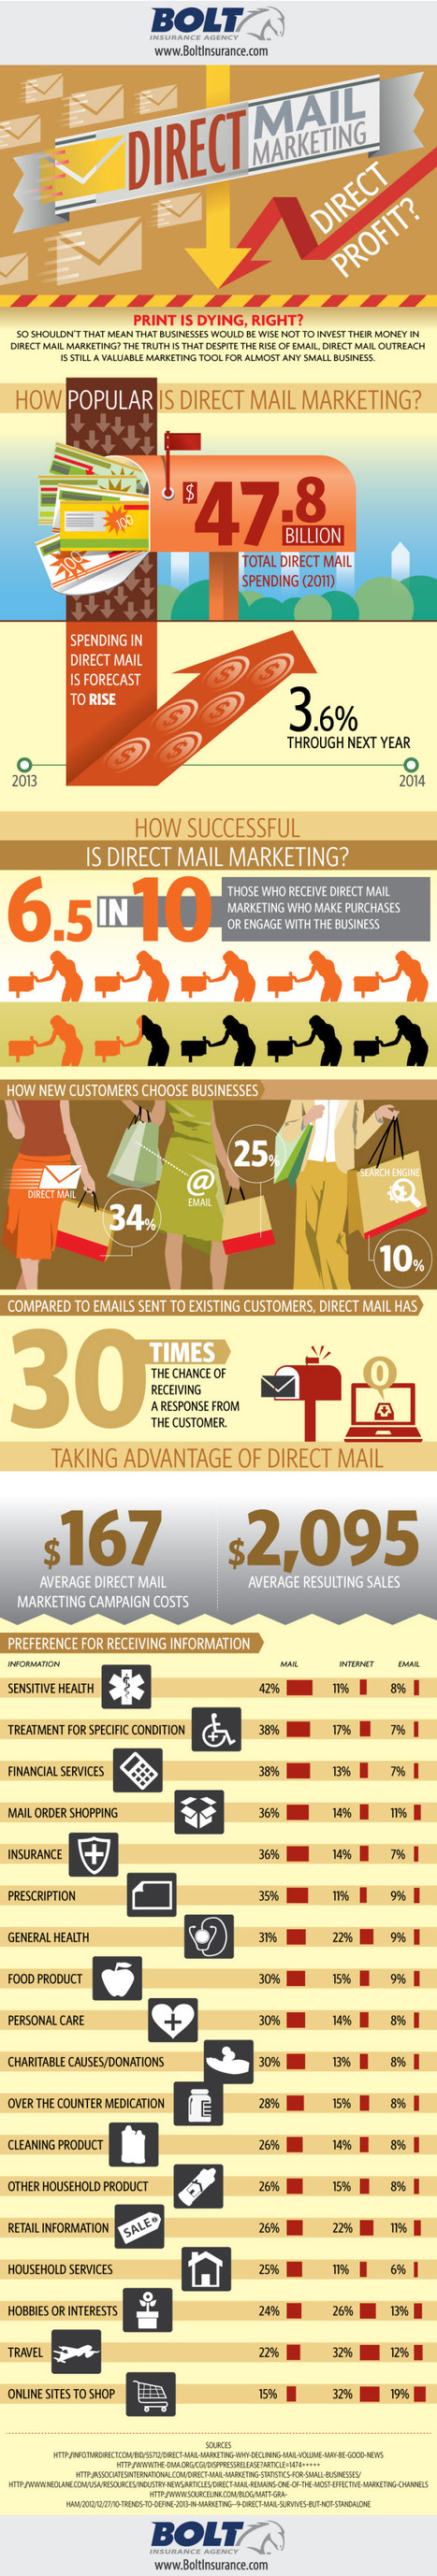 Direct Mail Marketing, Direct Profit? [Infographic] - Profs | #TheMarketingAutomationAlert | Communicating With Consumers | Scoop.it